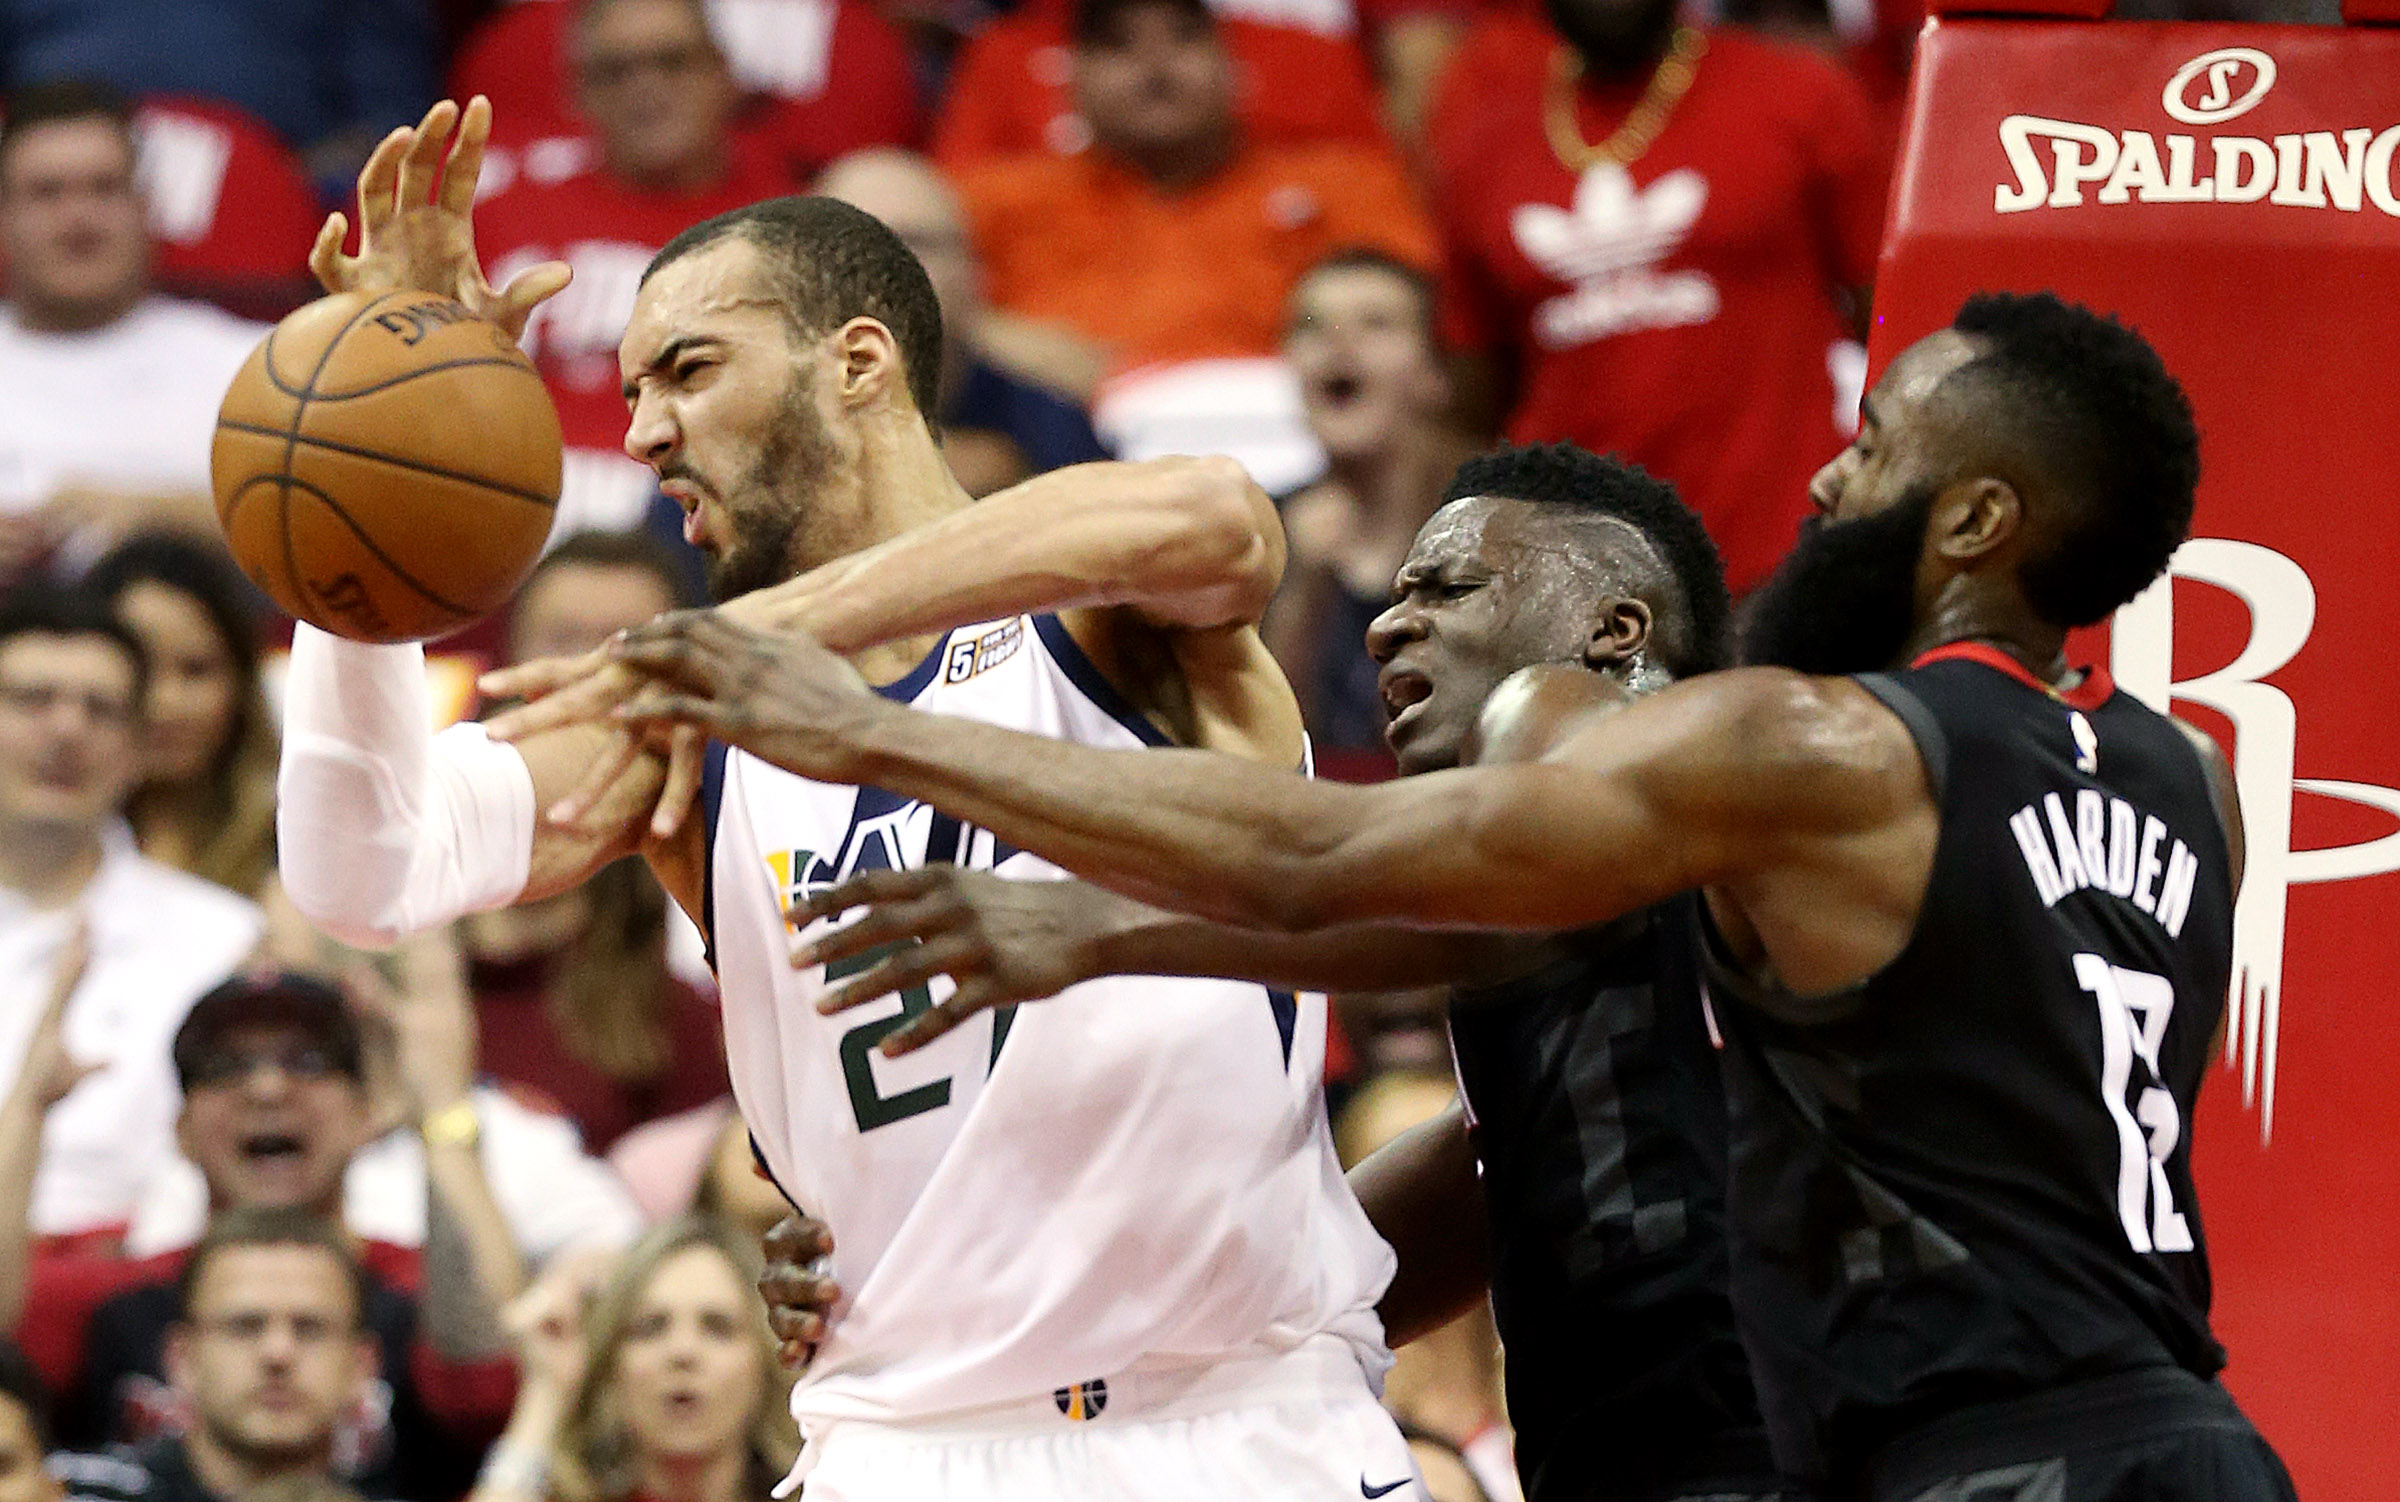 Utah Jazz center Rudy Gobert (27) is fouled by Houston Rockets guard James Harden (13) as the Utah Jazz and the Houston Rockets play Game 2 of the Western Conference semifinals at the Toyota Center in Houston on Wednesday, May 2, 2018.